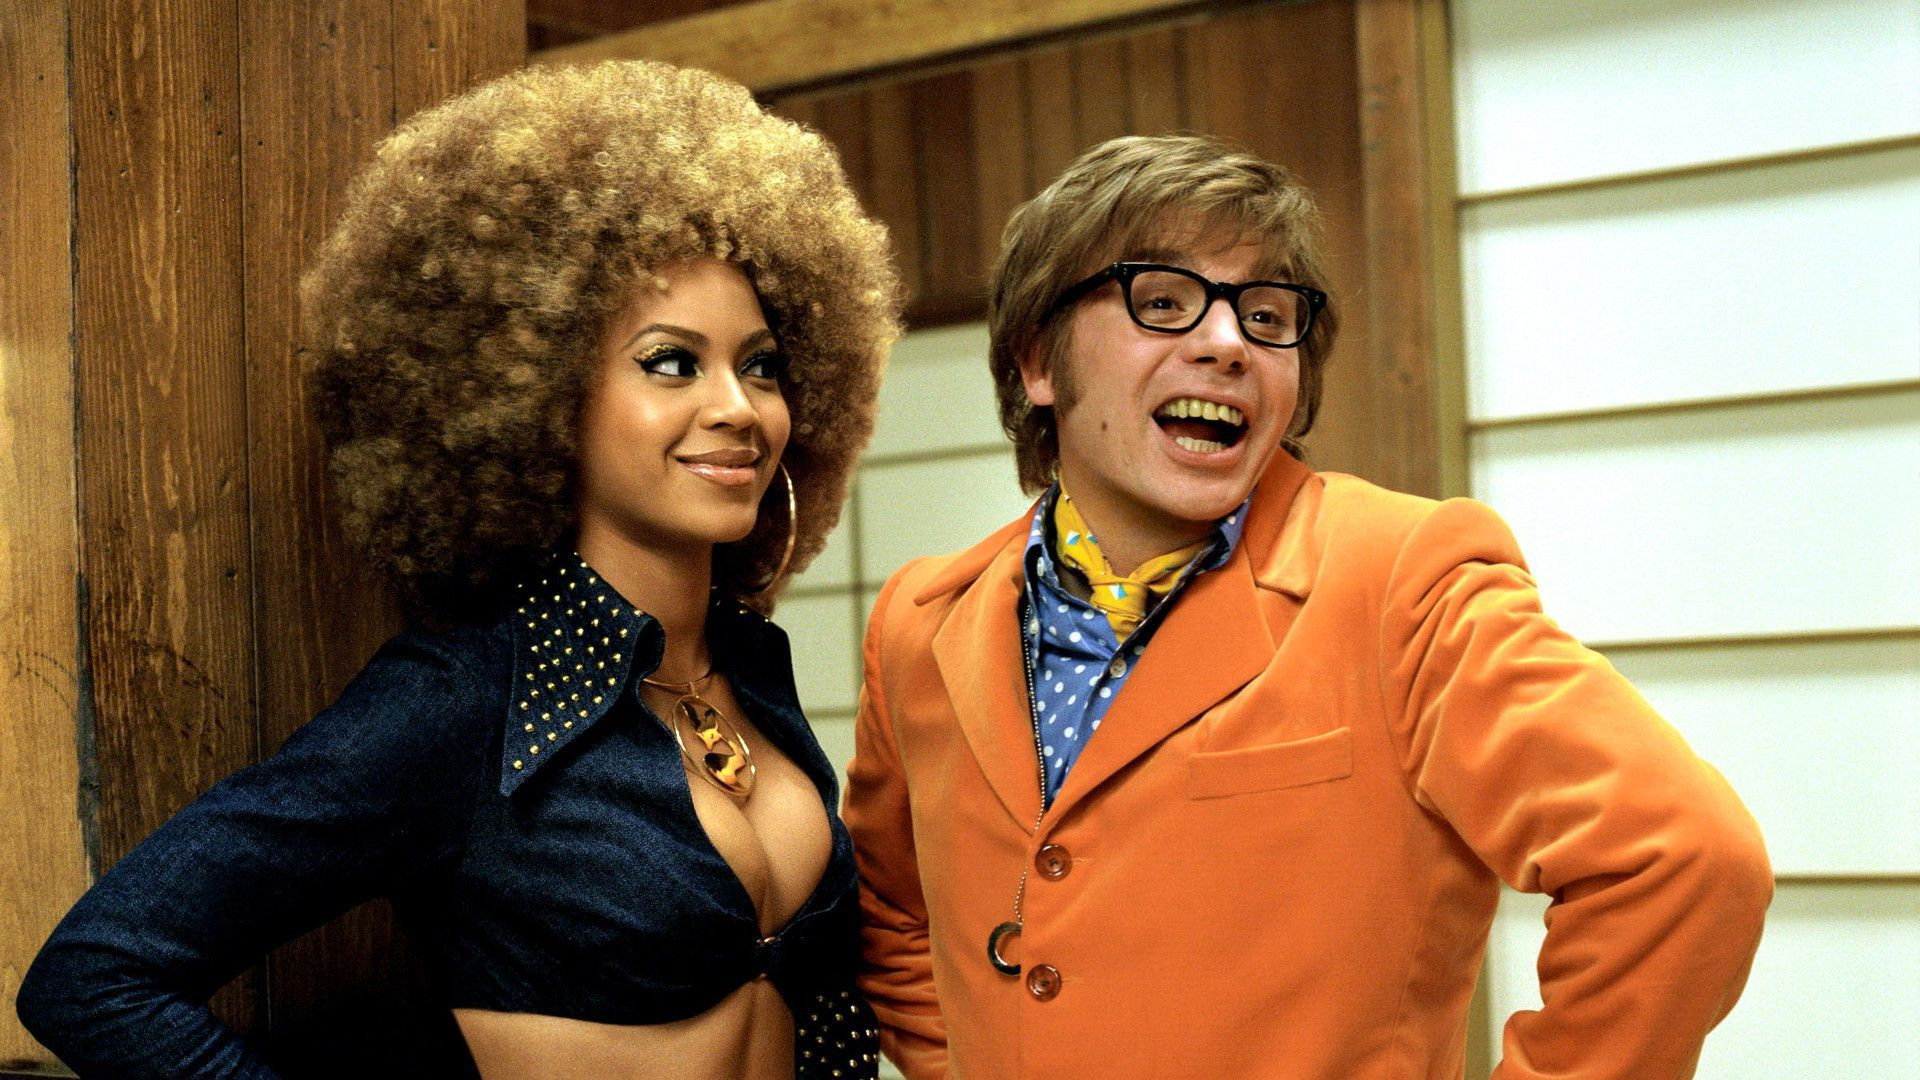 Austin Powers Beautiful